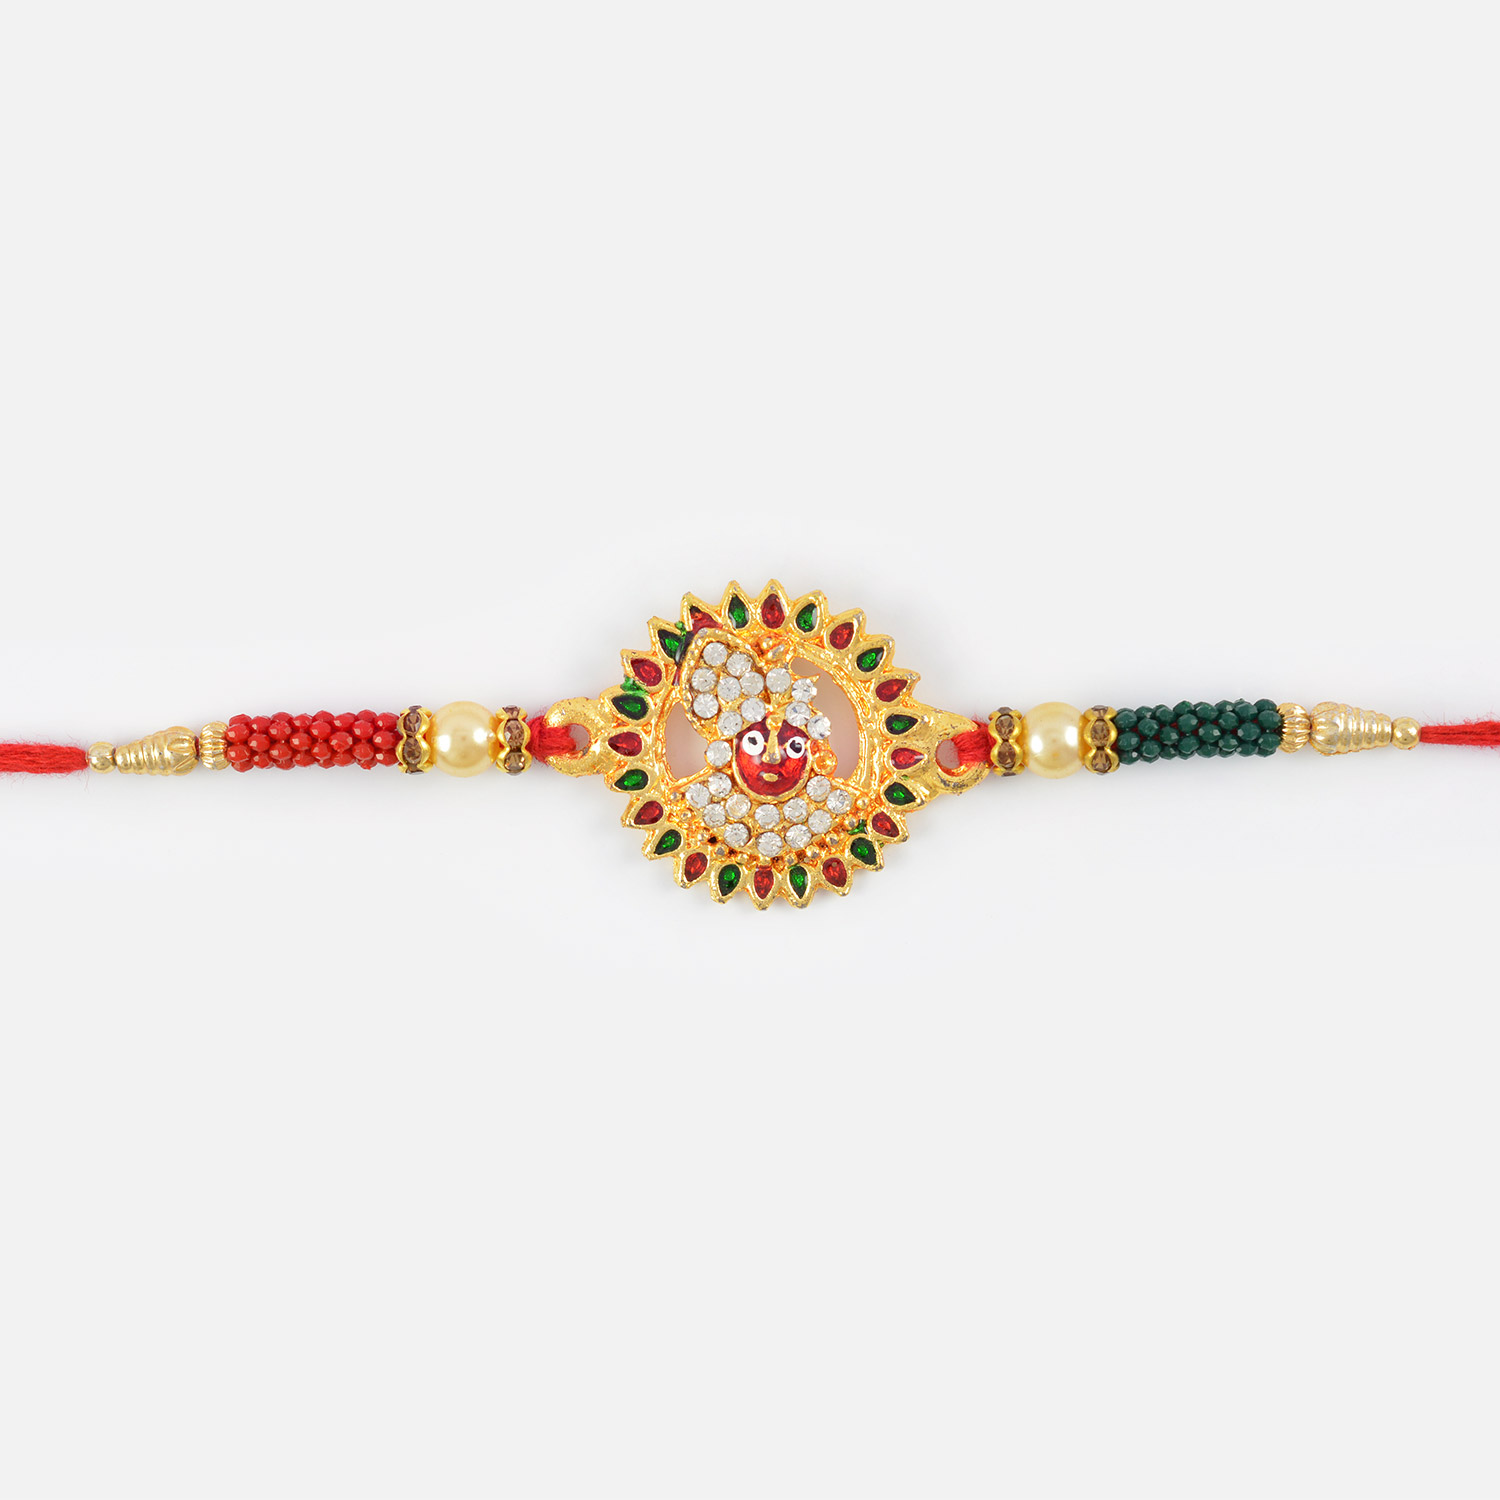 Golden Look of Lord Krishna with Golden Base and Beads in Authentic Red Mauli Rakhi